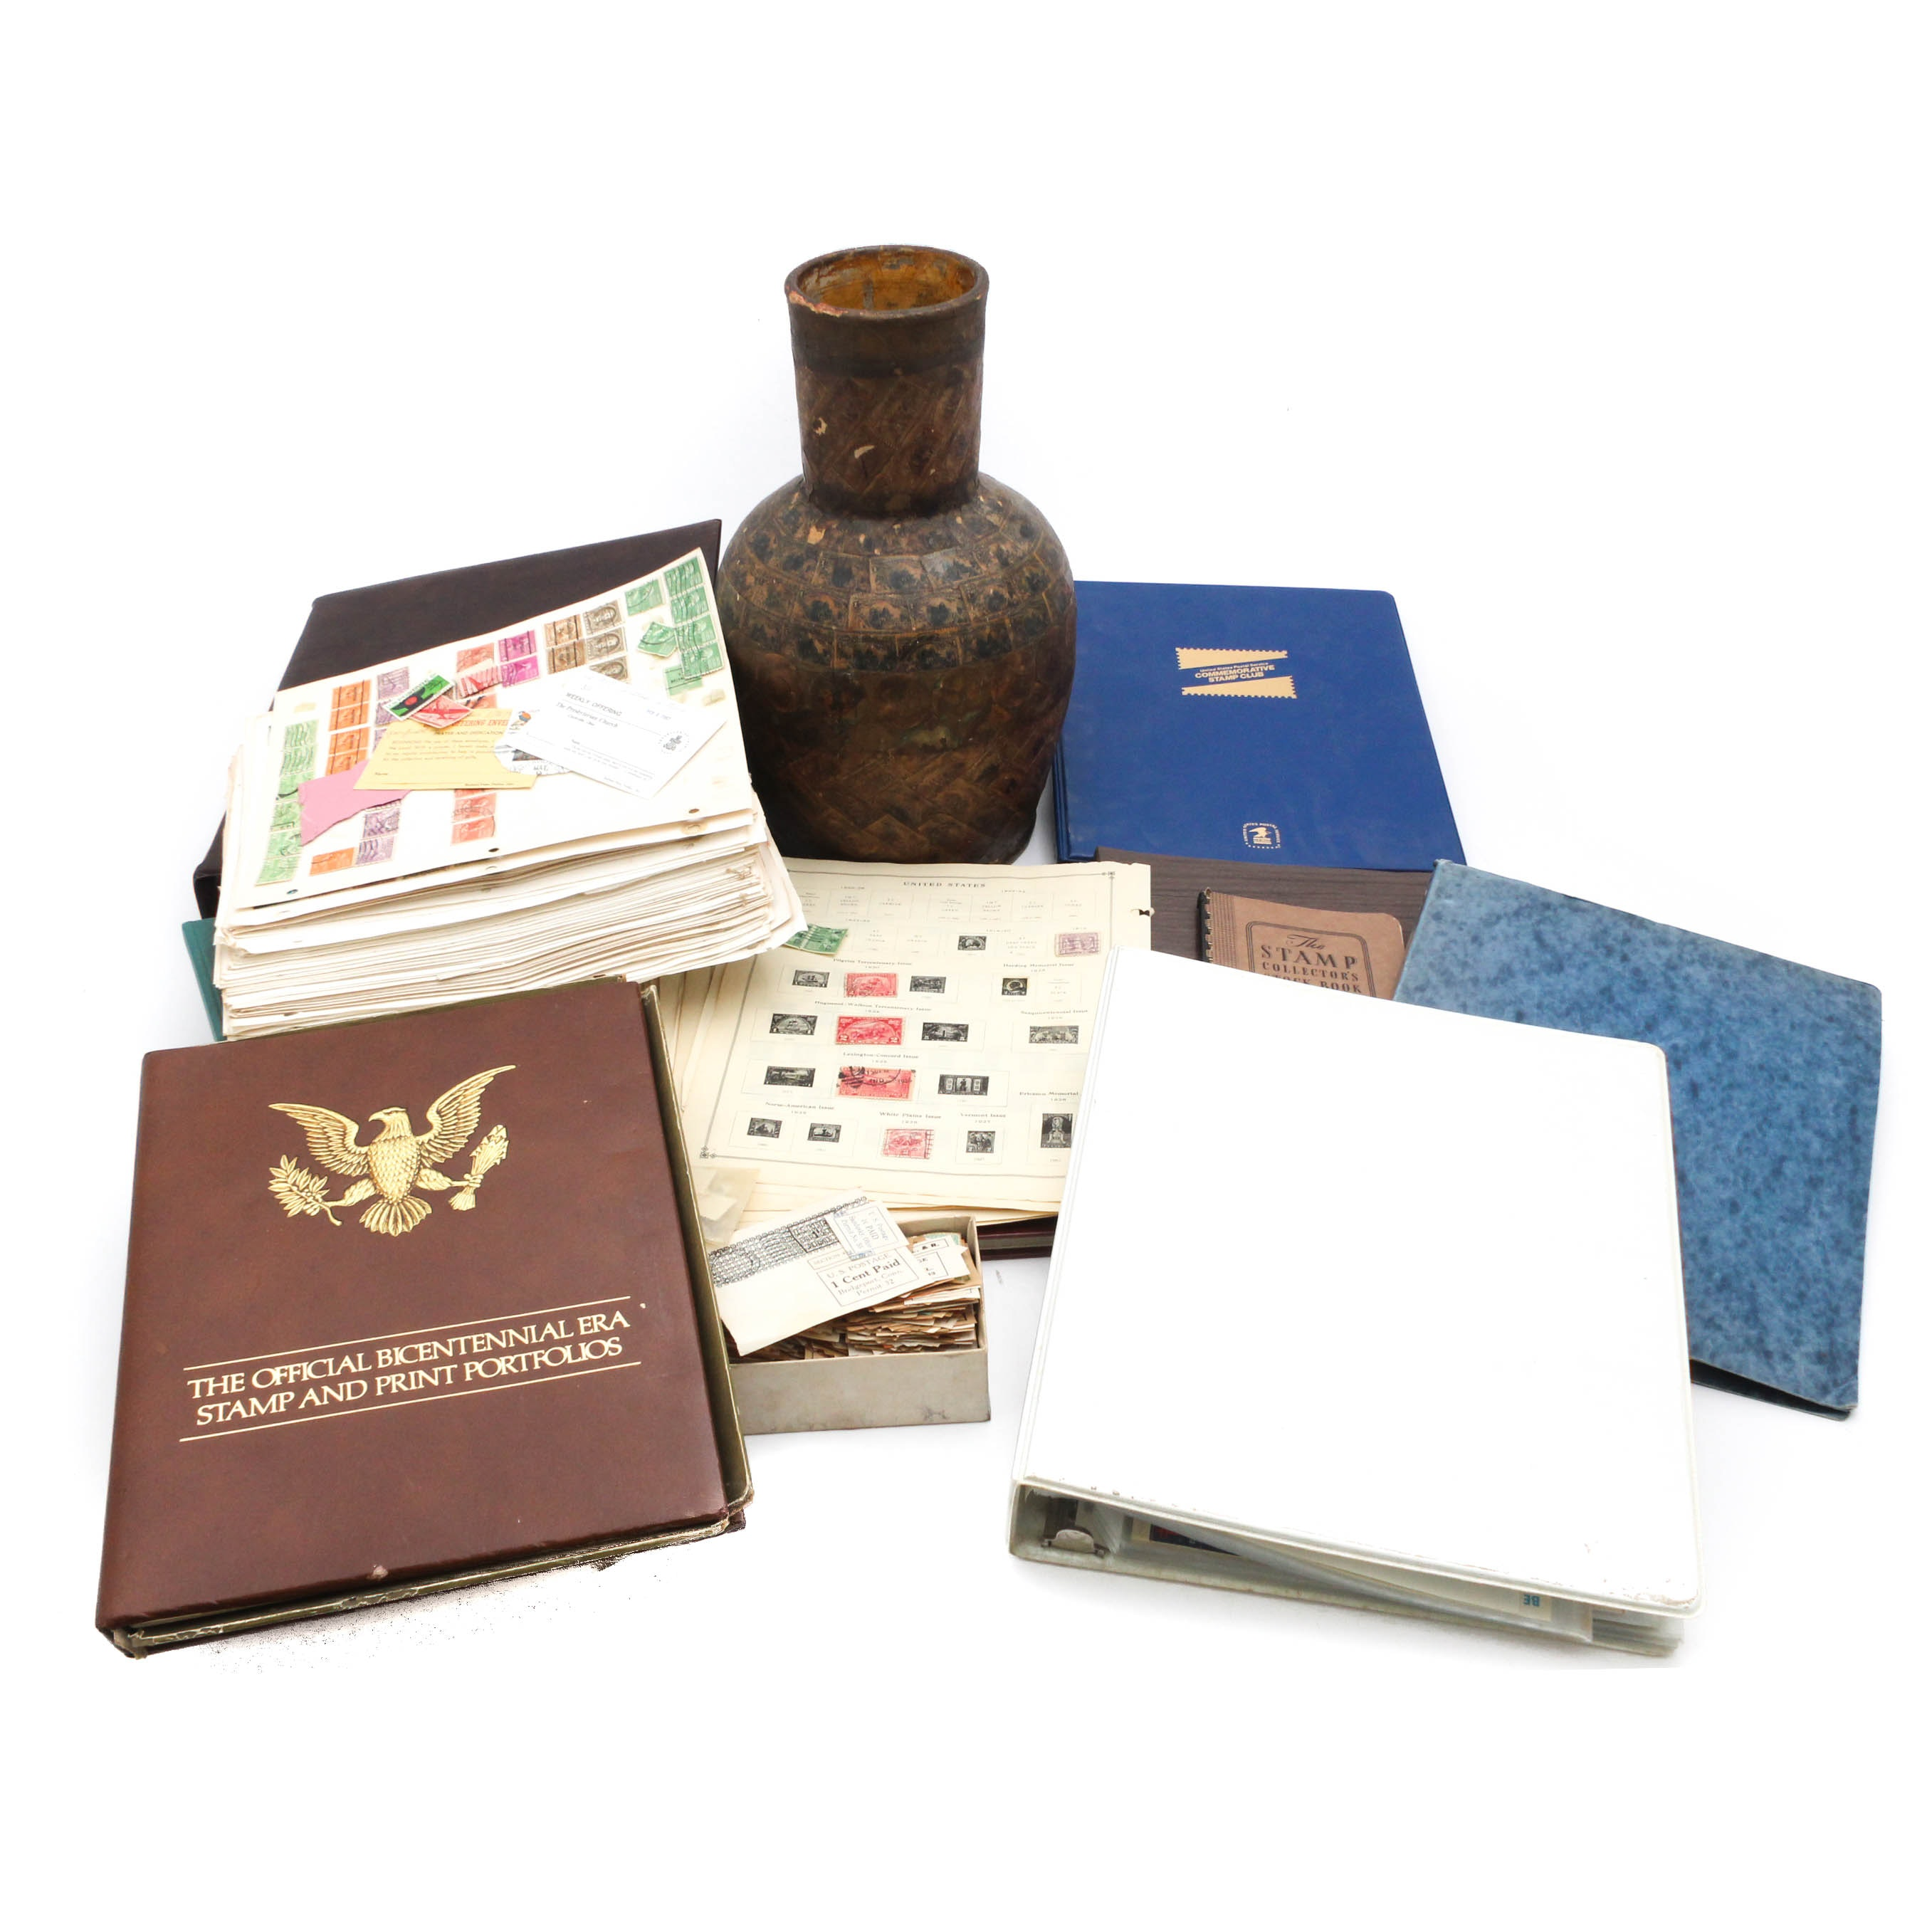 United States Stamp Collection and Stamp-Covered Vase